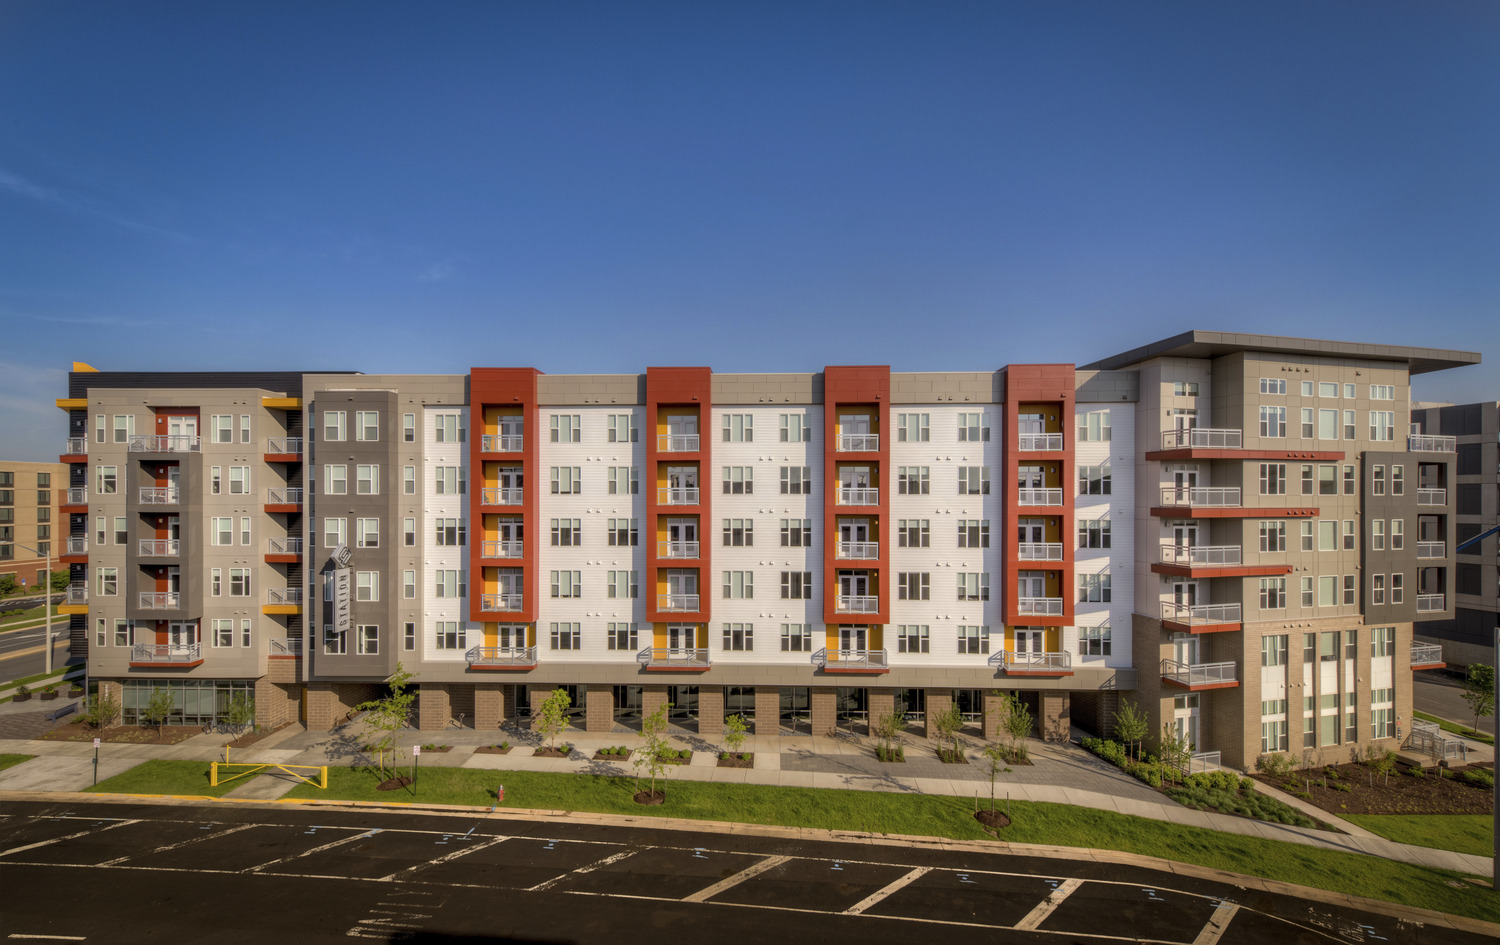 CBG builds Station on Silver, a 400-Unit Transit-Oriented Apartment Community with Parking and Amenities in Herndon, VA - Image #2